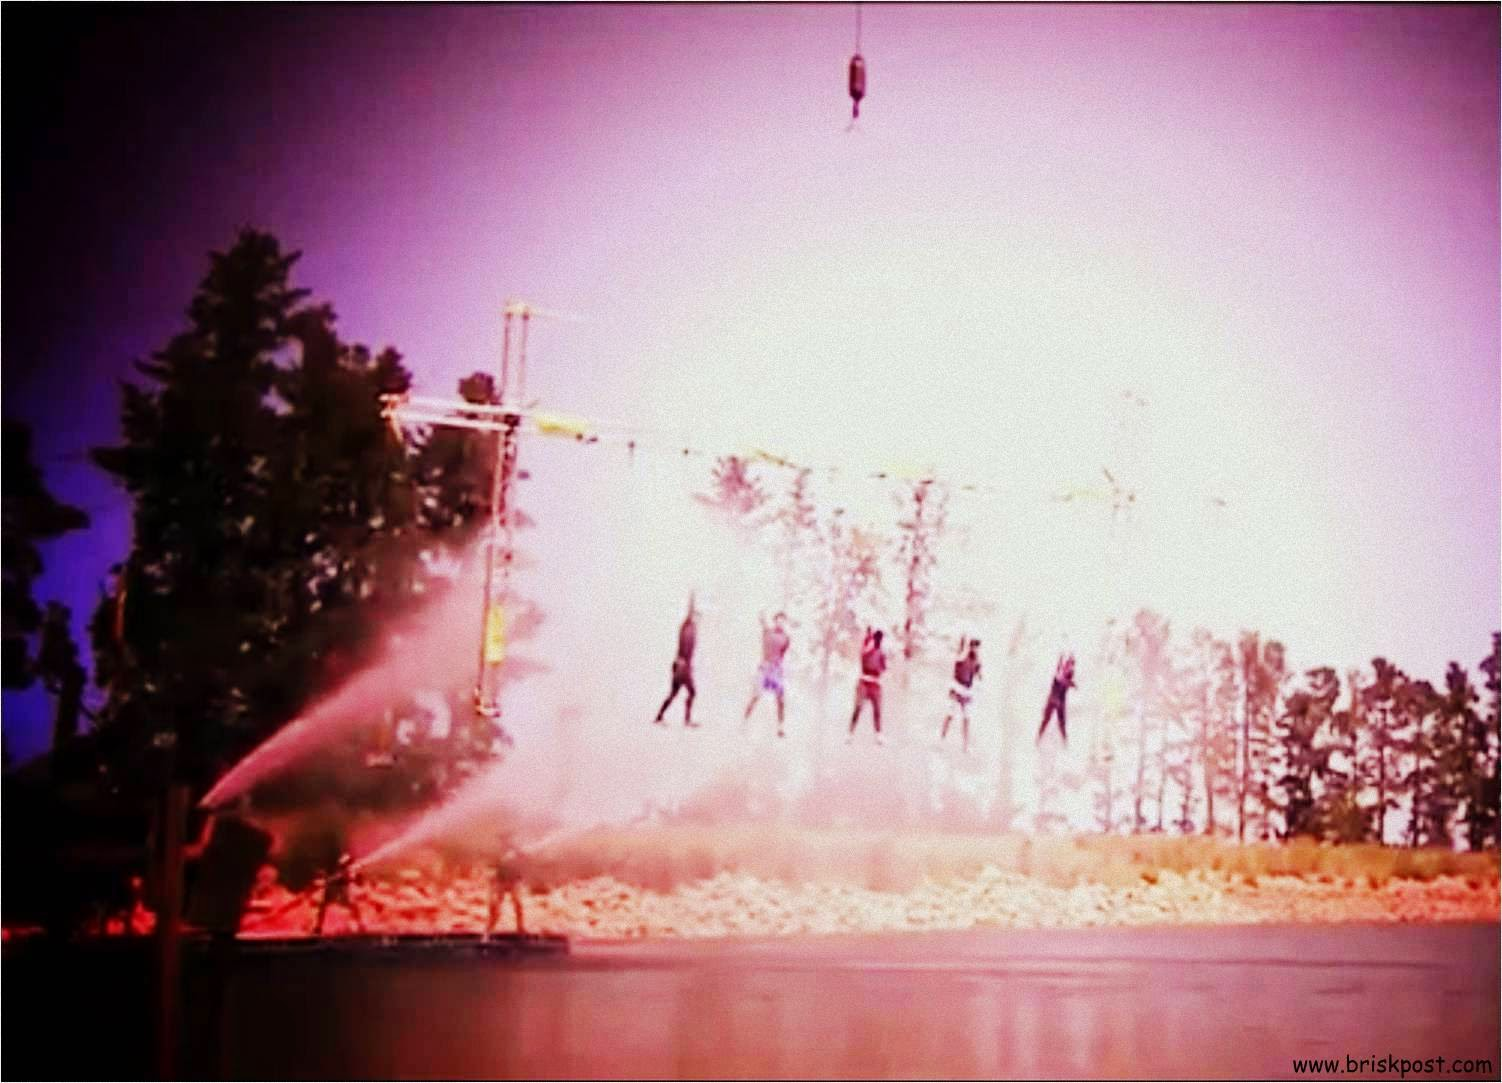 Khatron Ke Khiladi contestants making balance on a rope in front of forceful shower over river water during Standing Ovation Stunt in Fear Factor Darr Ka Blockbuster